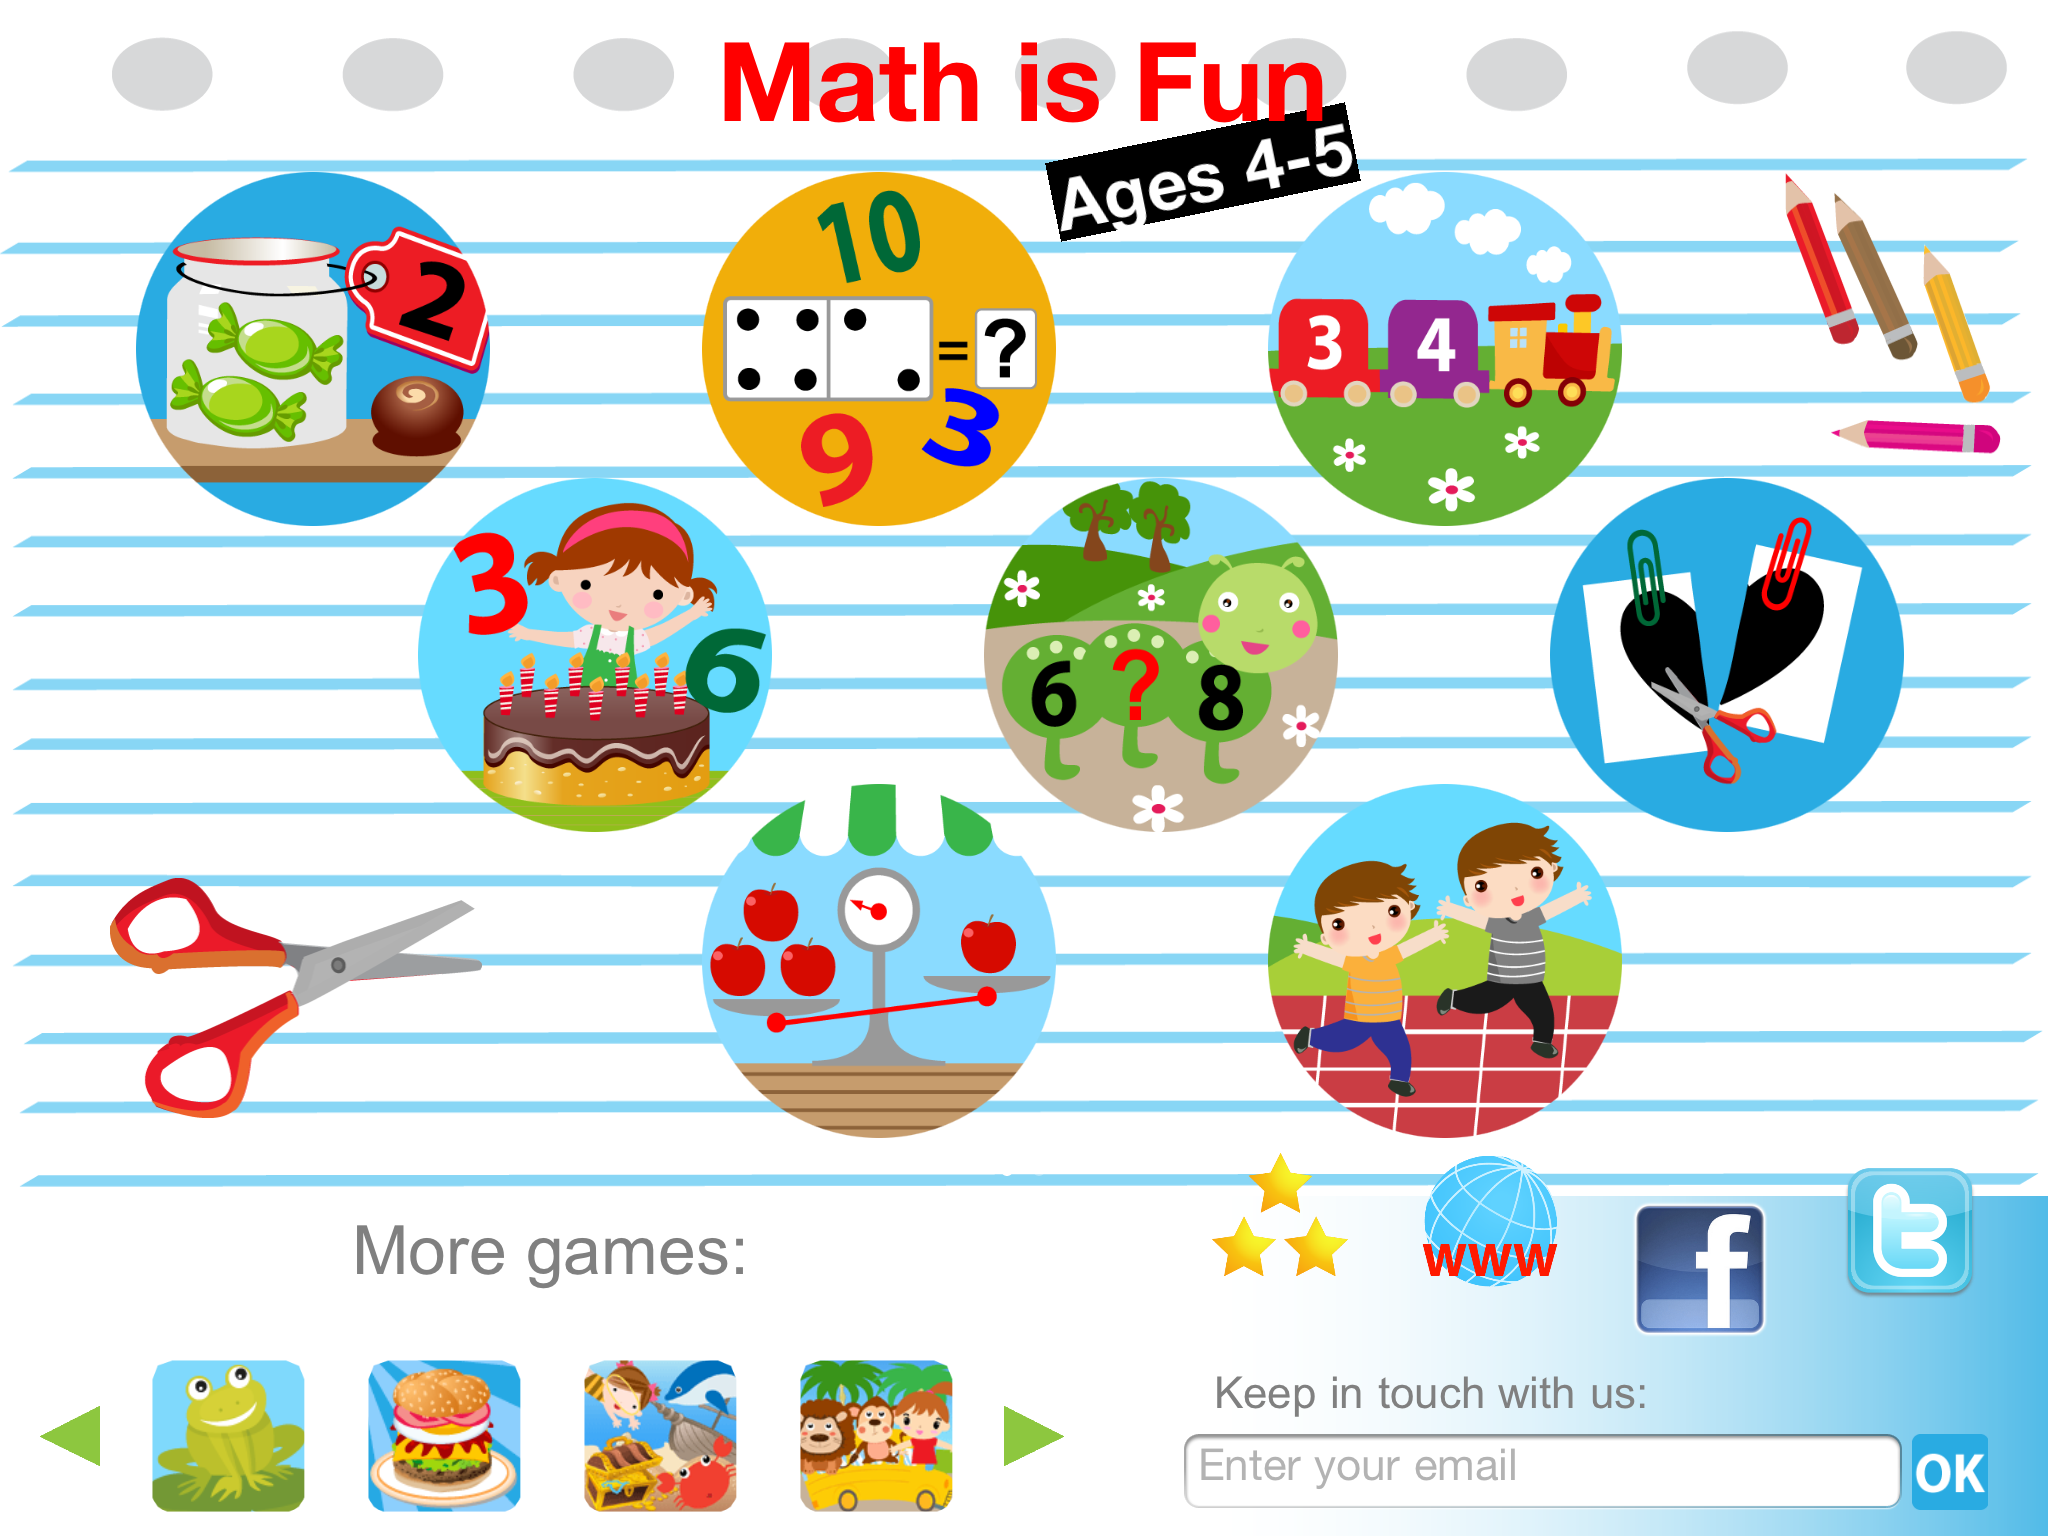 Math Is Fun Clipart | www.pixshark.com - Images Galleries ...